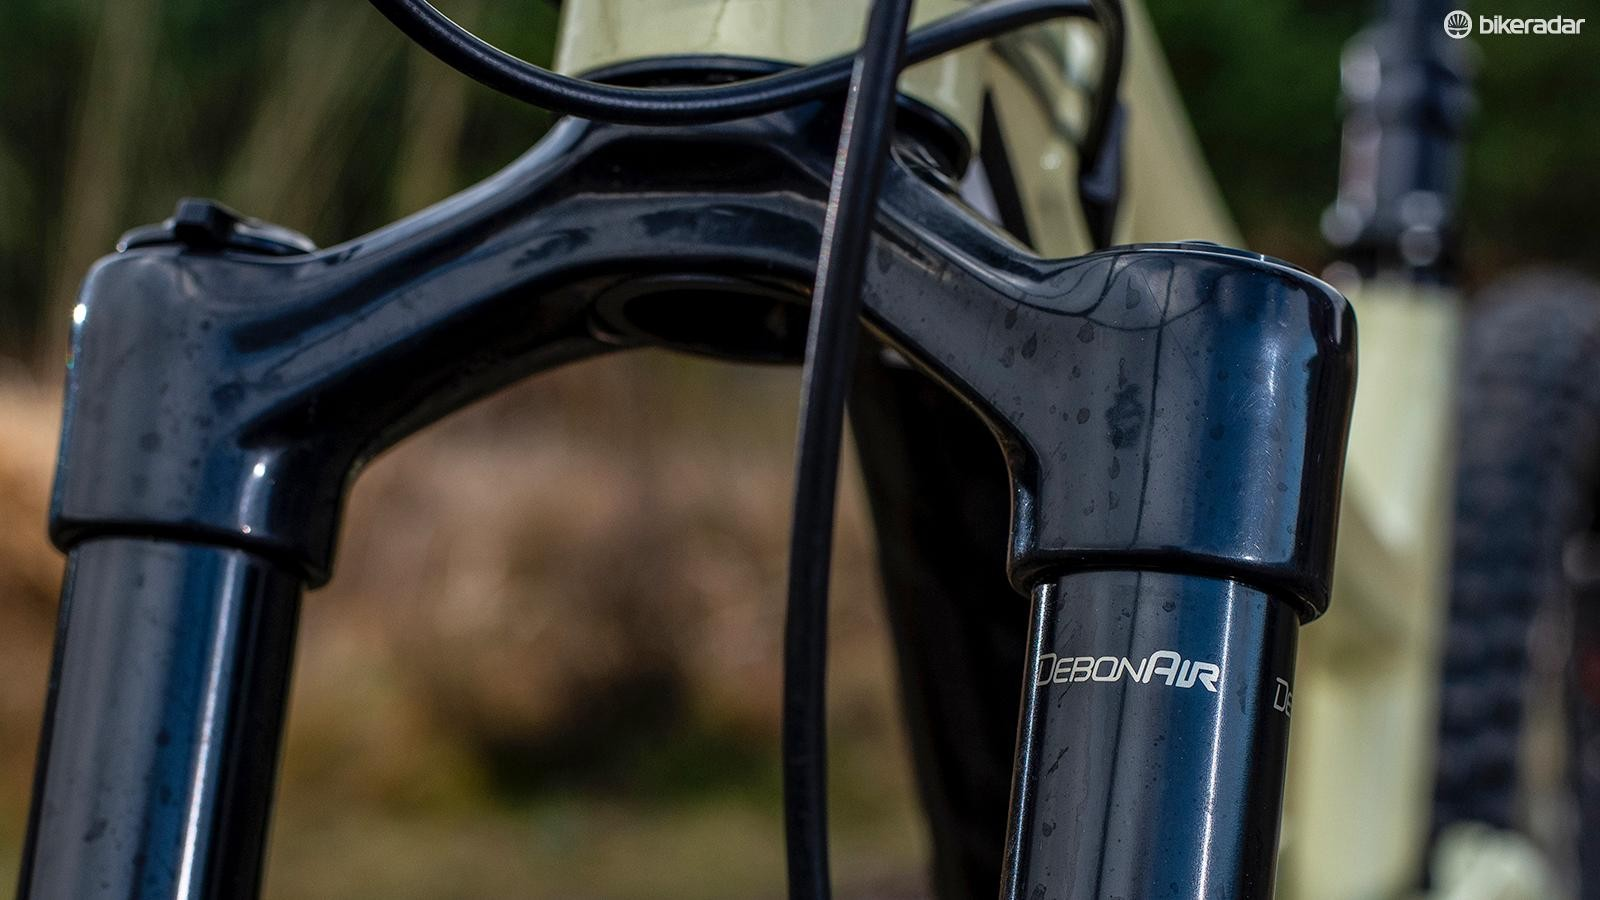 RockShox' DebonAir spring gives great small bump sensitivity